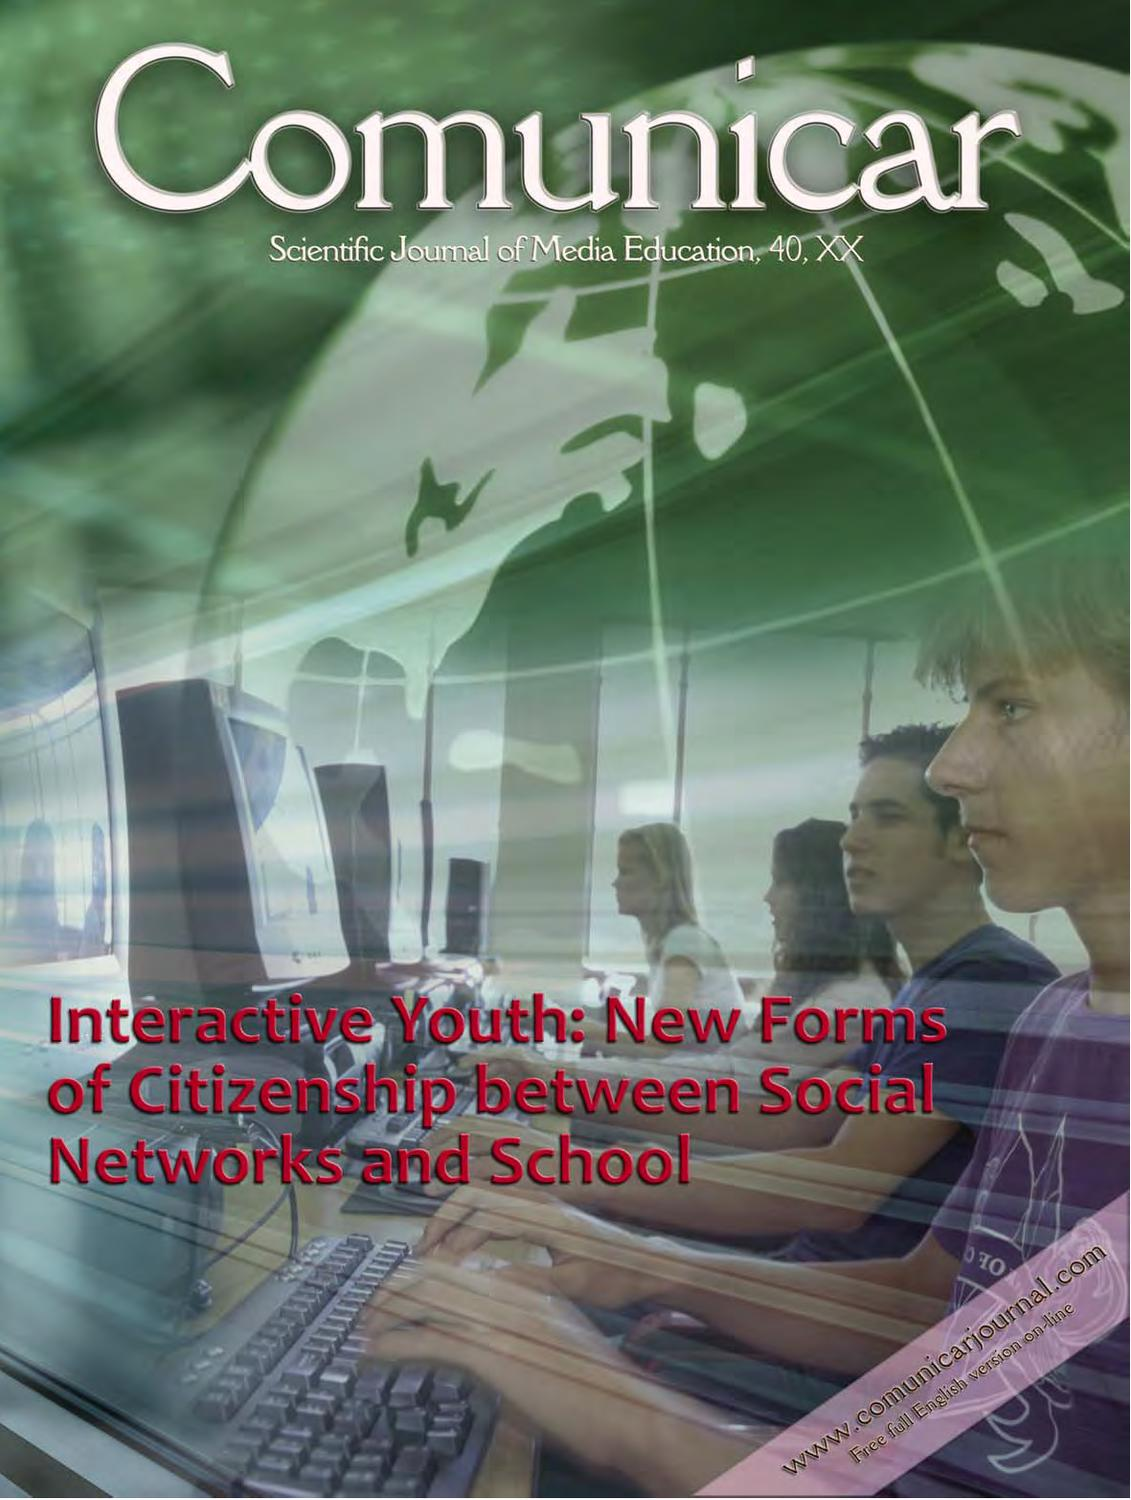 Libros Psicologia Uned Dropbox Interactive Youth New Forms Of Citizenship Between Social Networks And School Settings